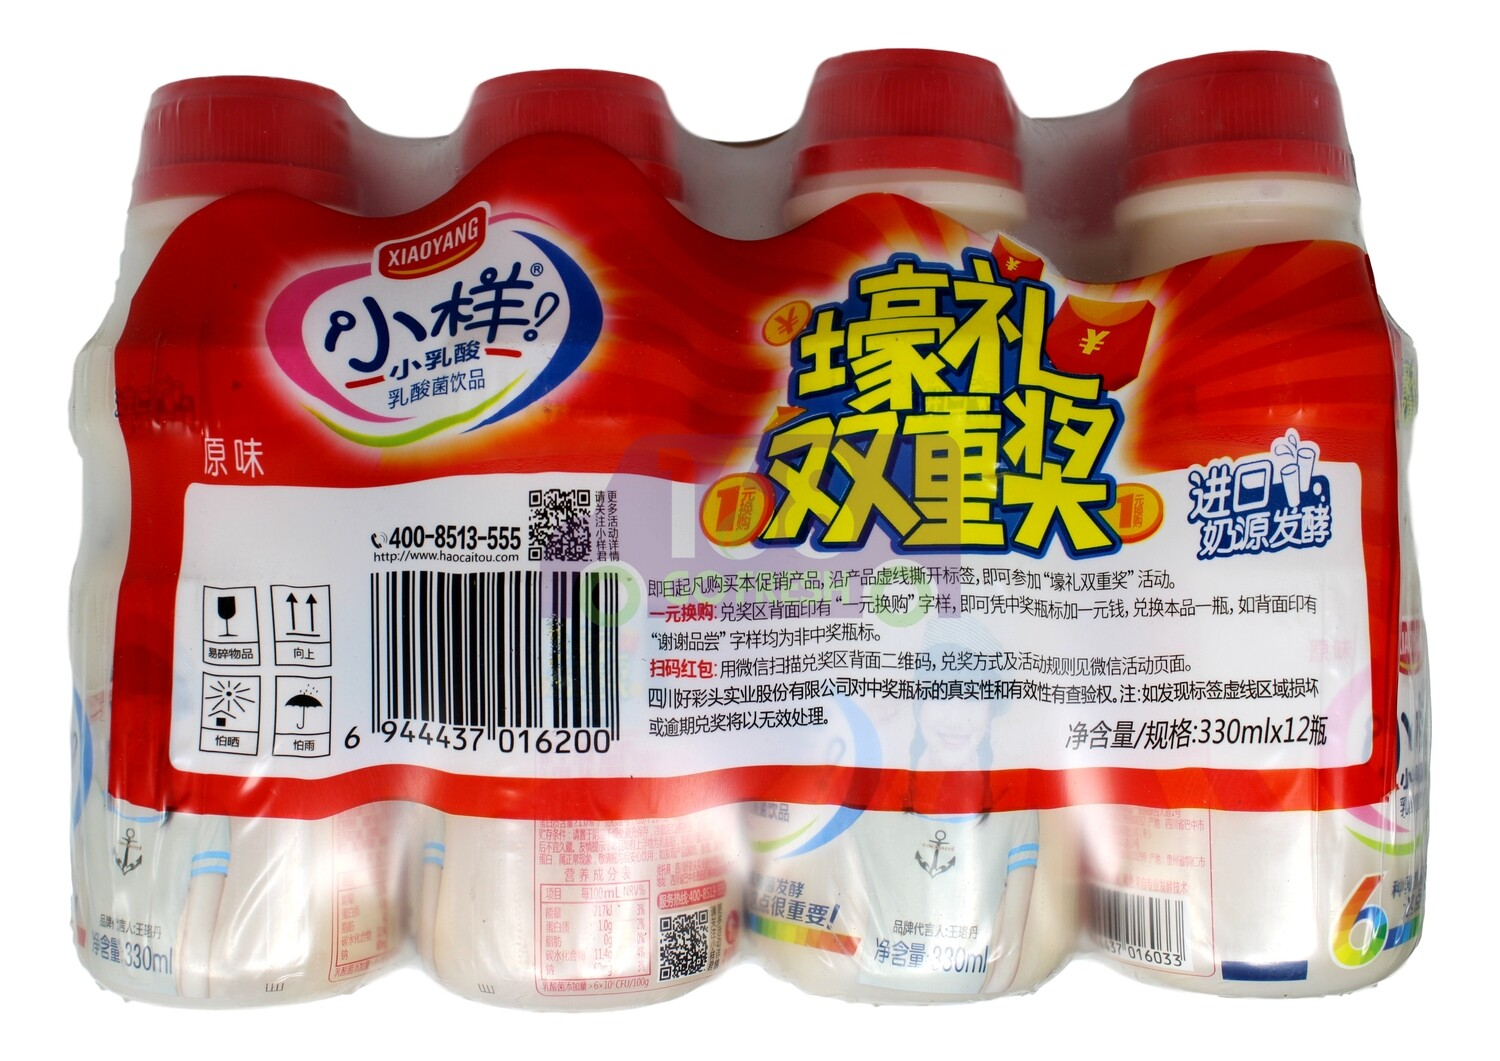 YOUGER DRINK 小样 小乳酸 乳酸菌饮品 (330ml*12)